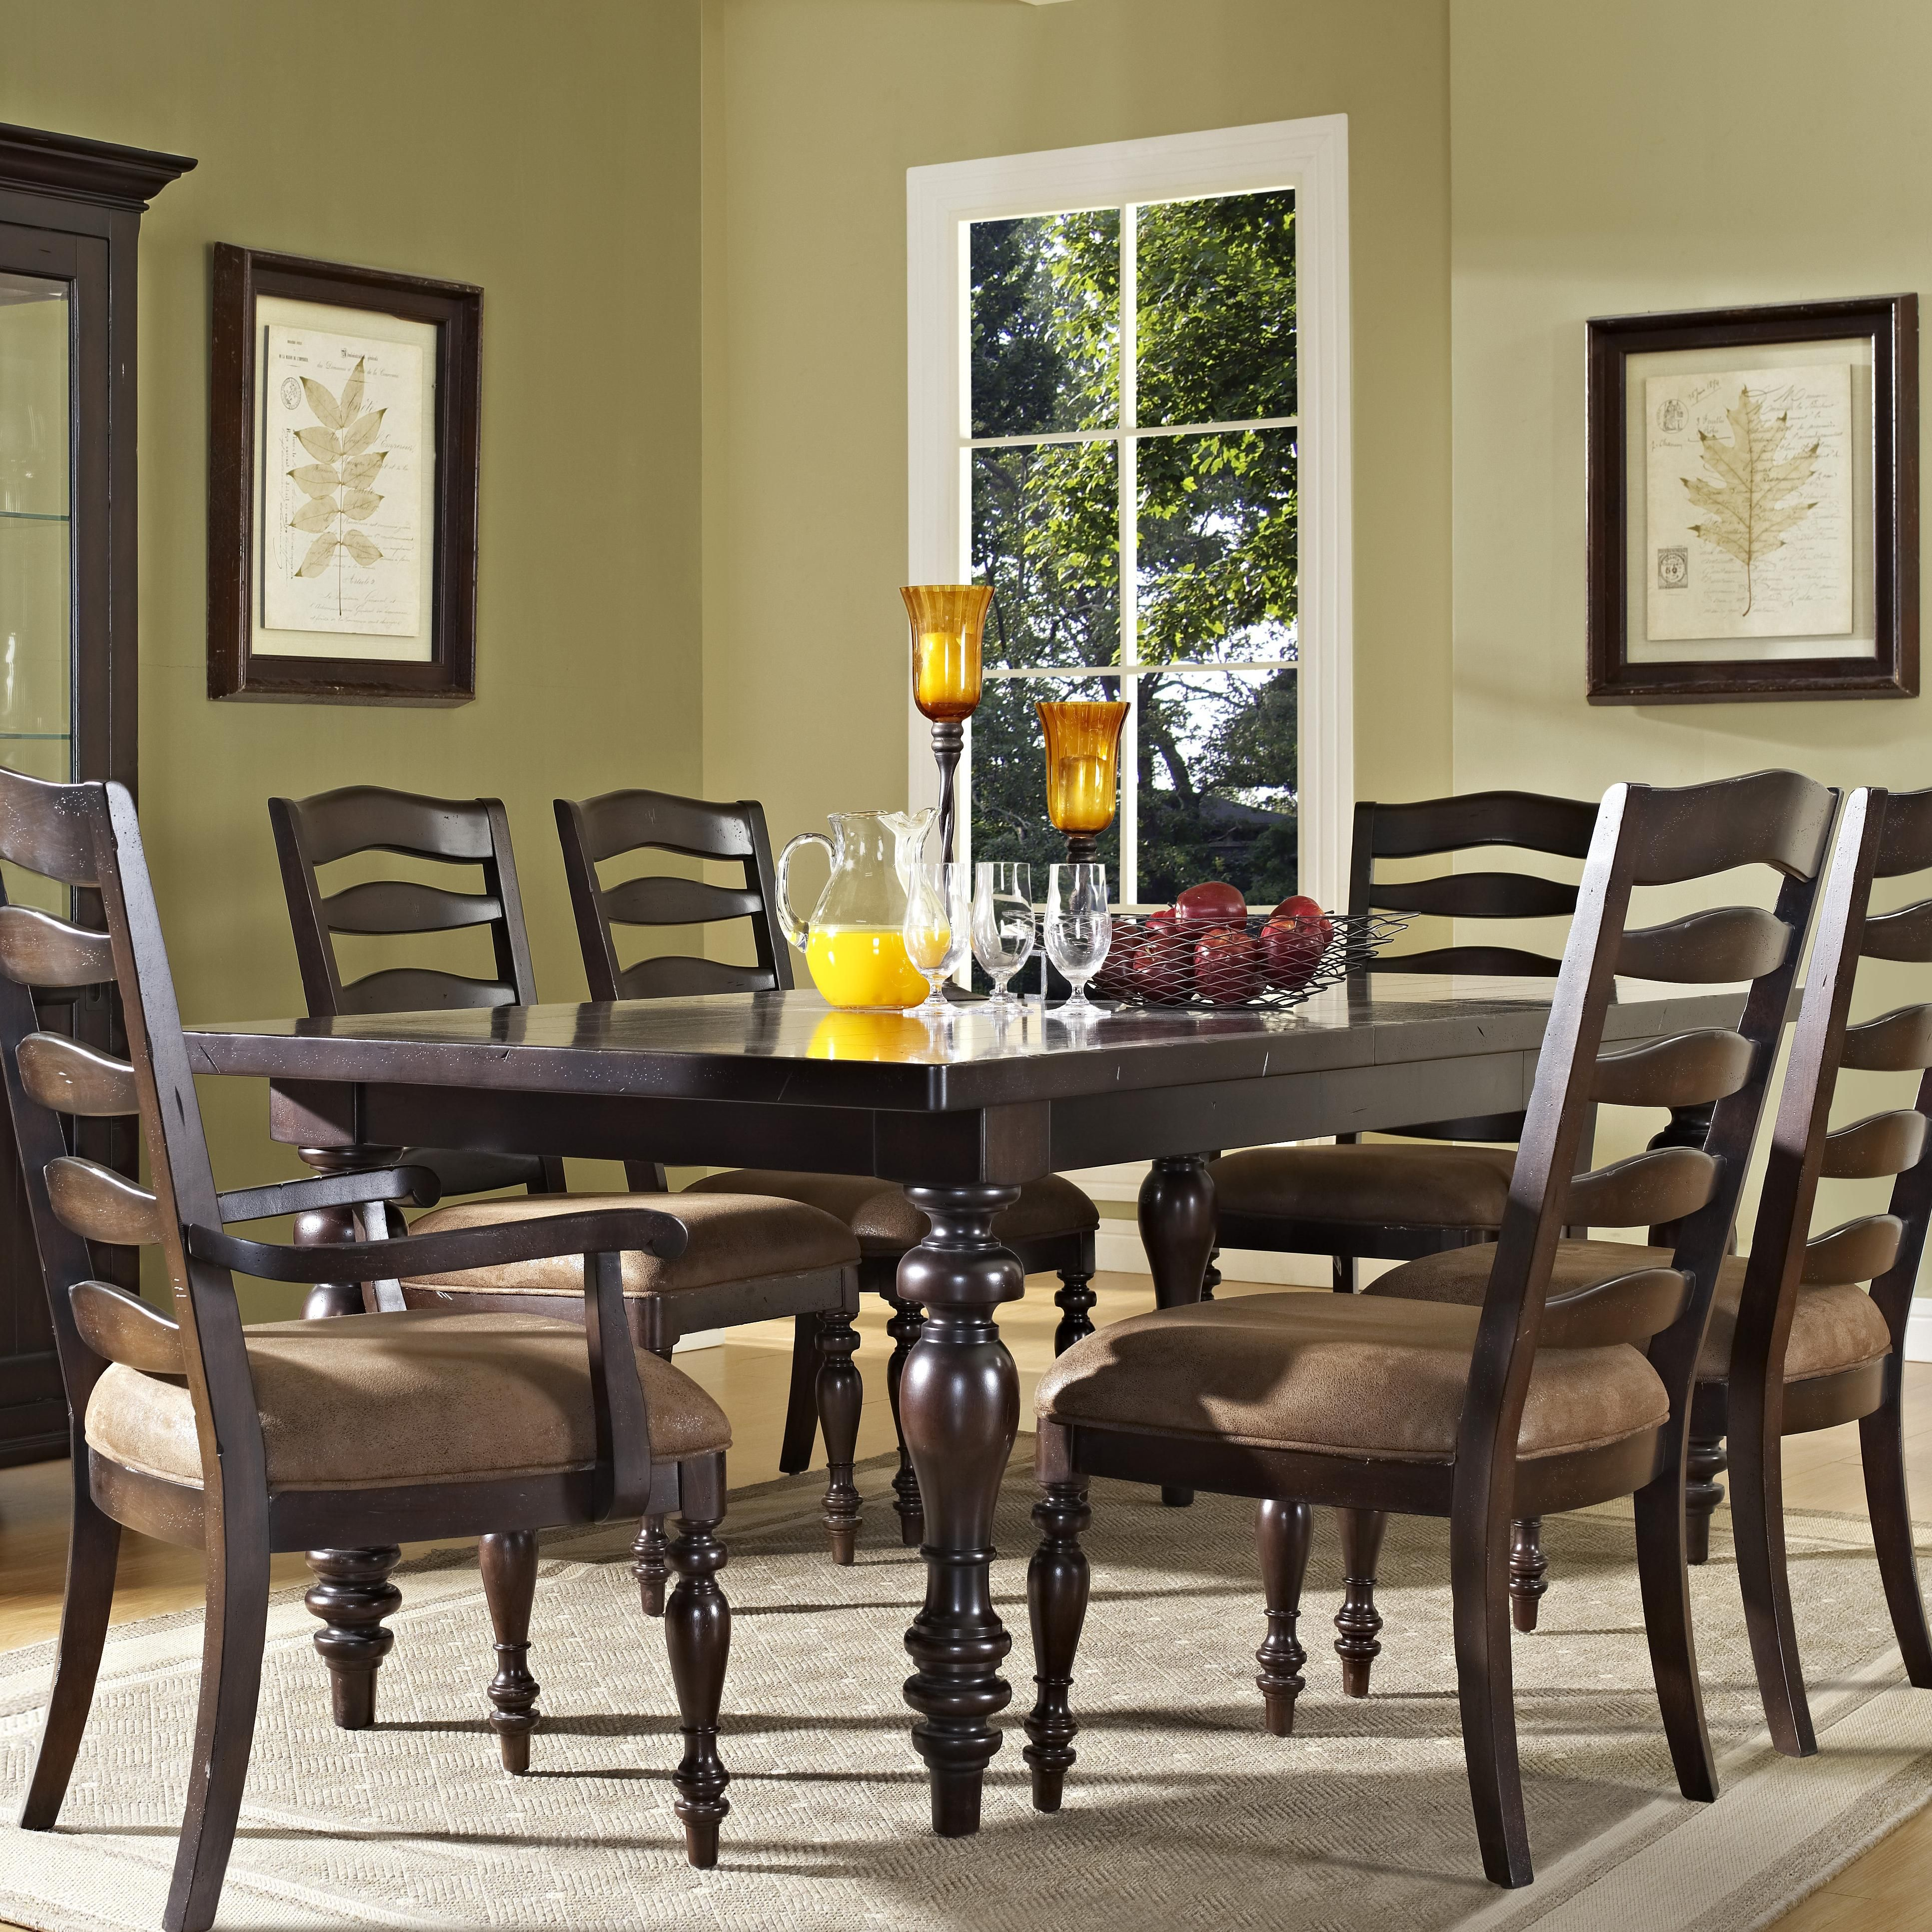 Wedgewood 4 Turned Leg Dining Table And Chairs By Pulaski Furniture